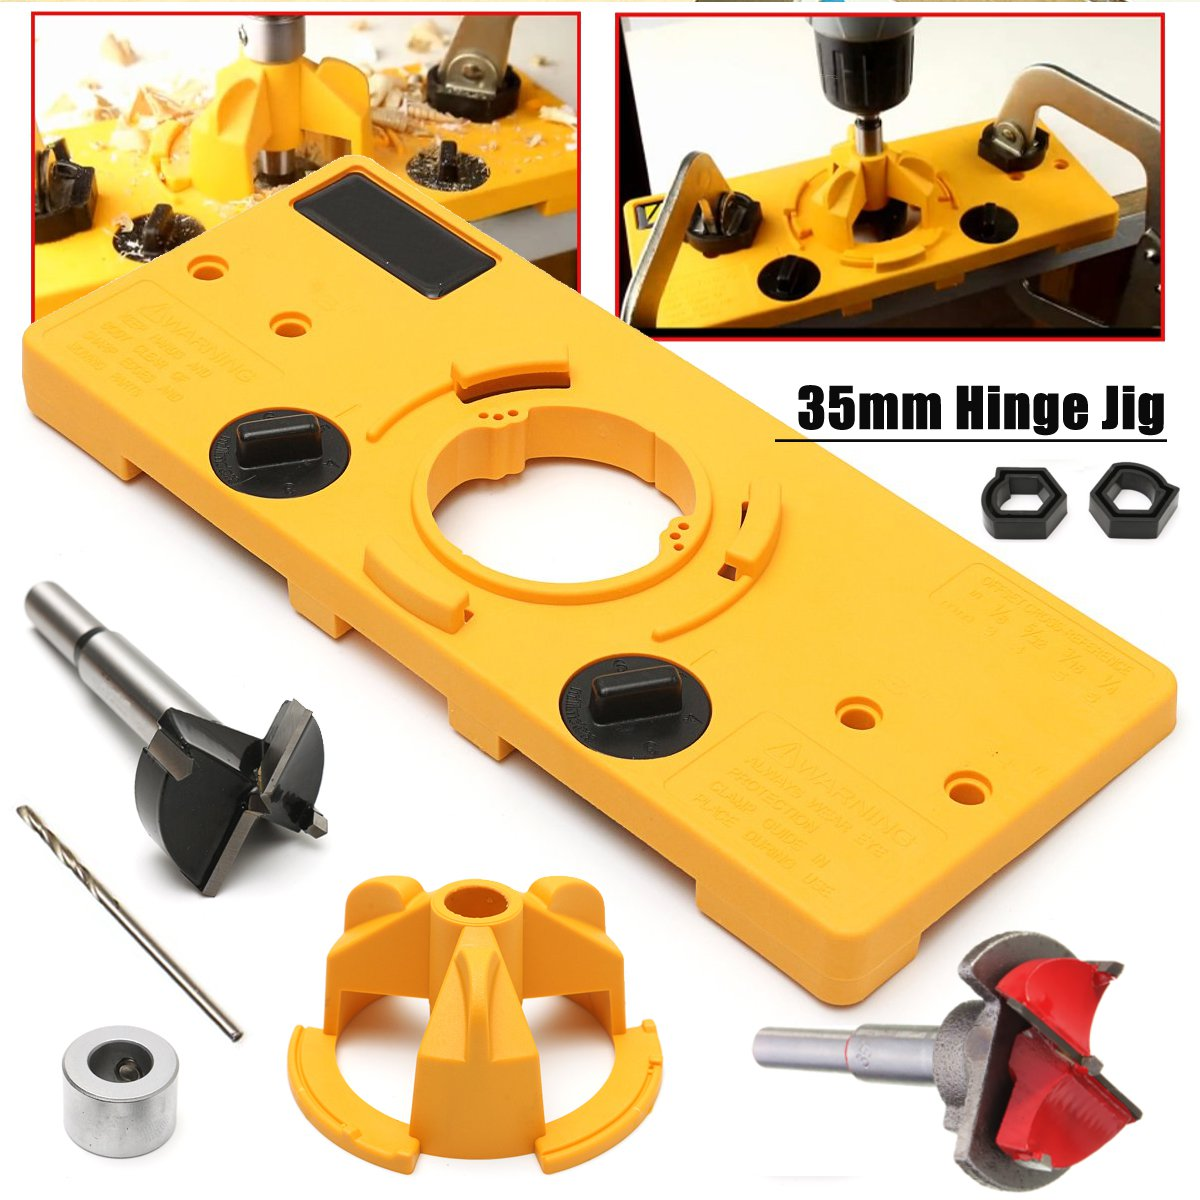 35MM Carbide Tipped Hinge Cutter Boring Drill + 35mm Hinge Drilling Jig + 35mm Forstner Bit woodworking tool drill bits 30mm tool hinge cutter boring for woodworking wood drilling forstner bit tungsten carbide carpentry tool rotary